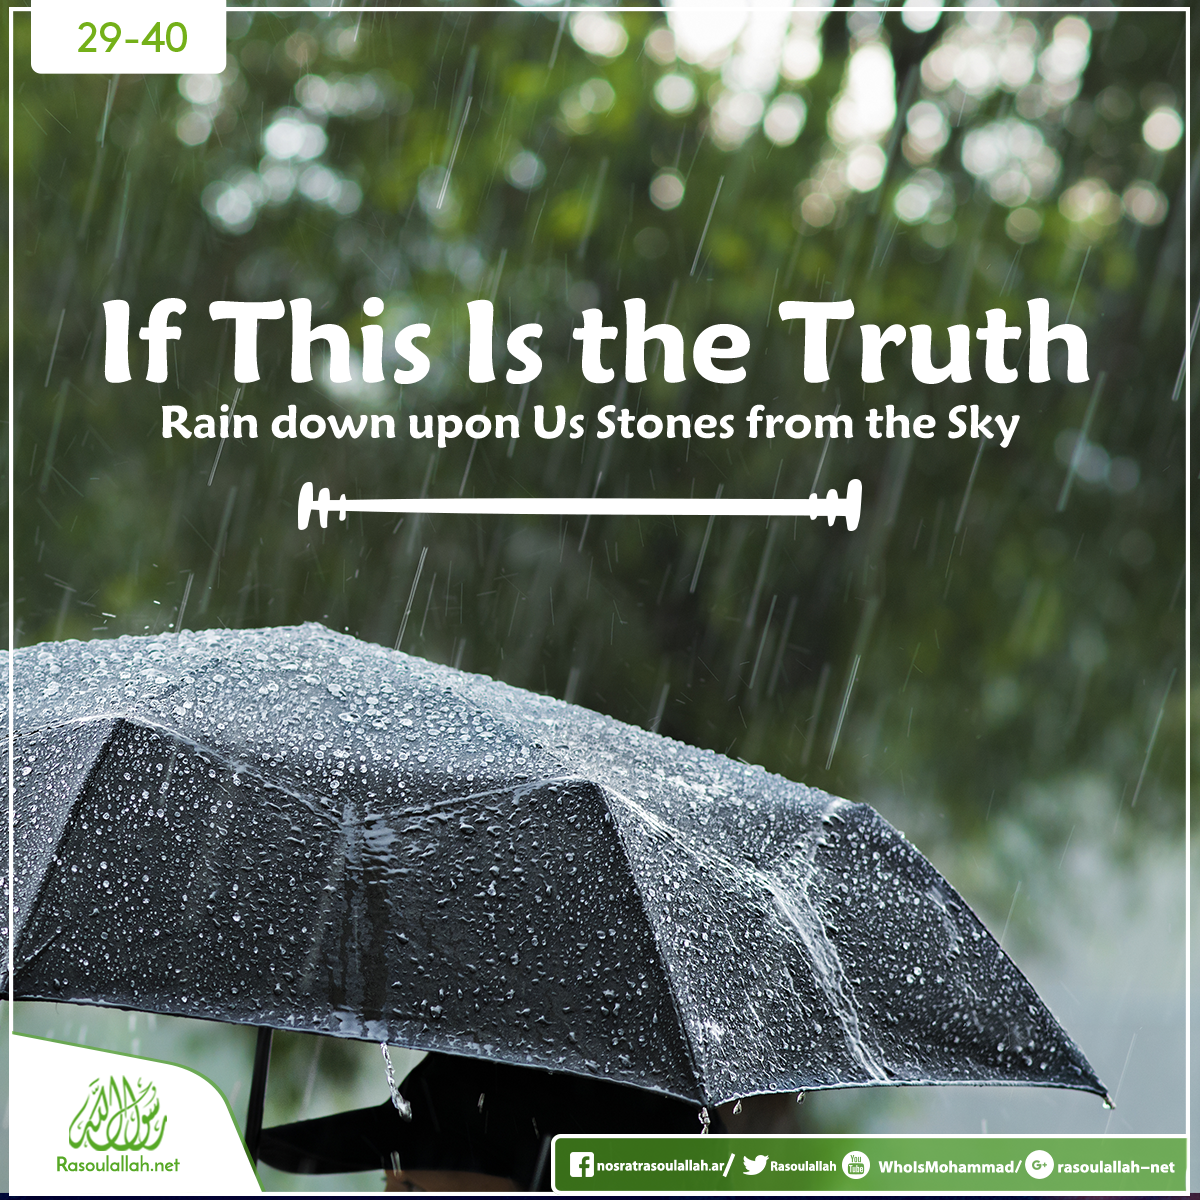 If this is the truth, rain down upon us stones from the sky!